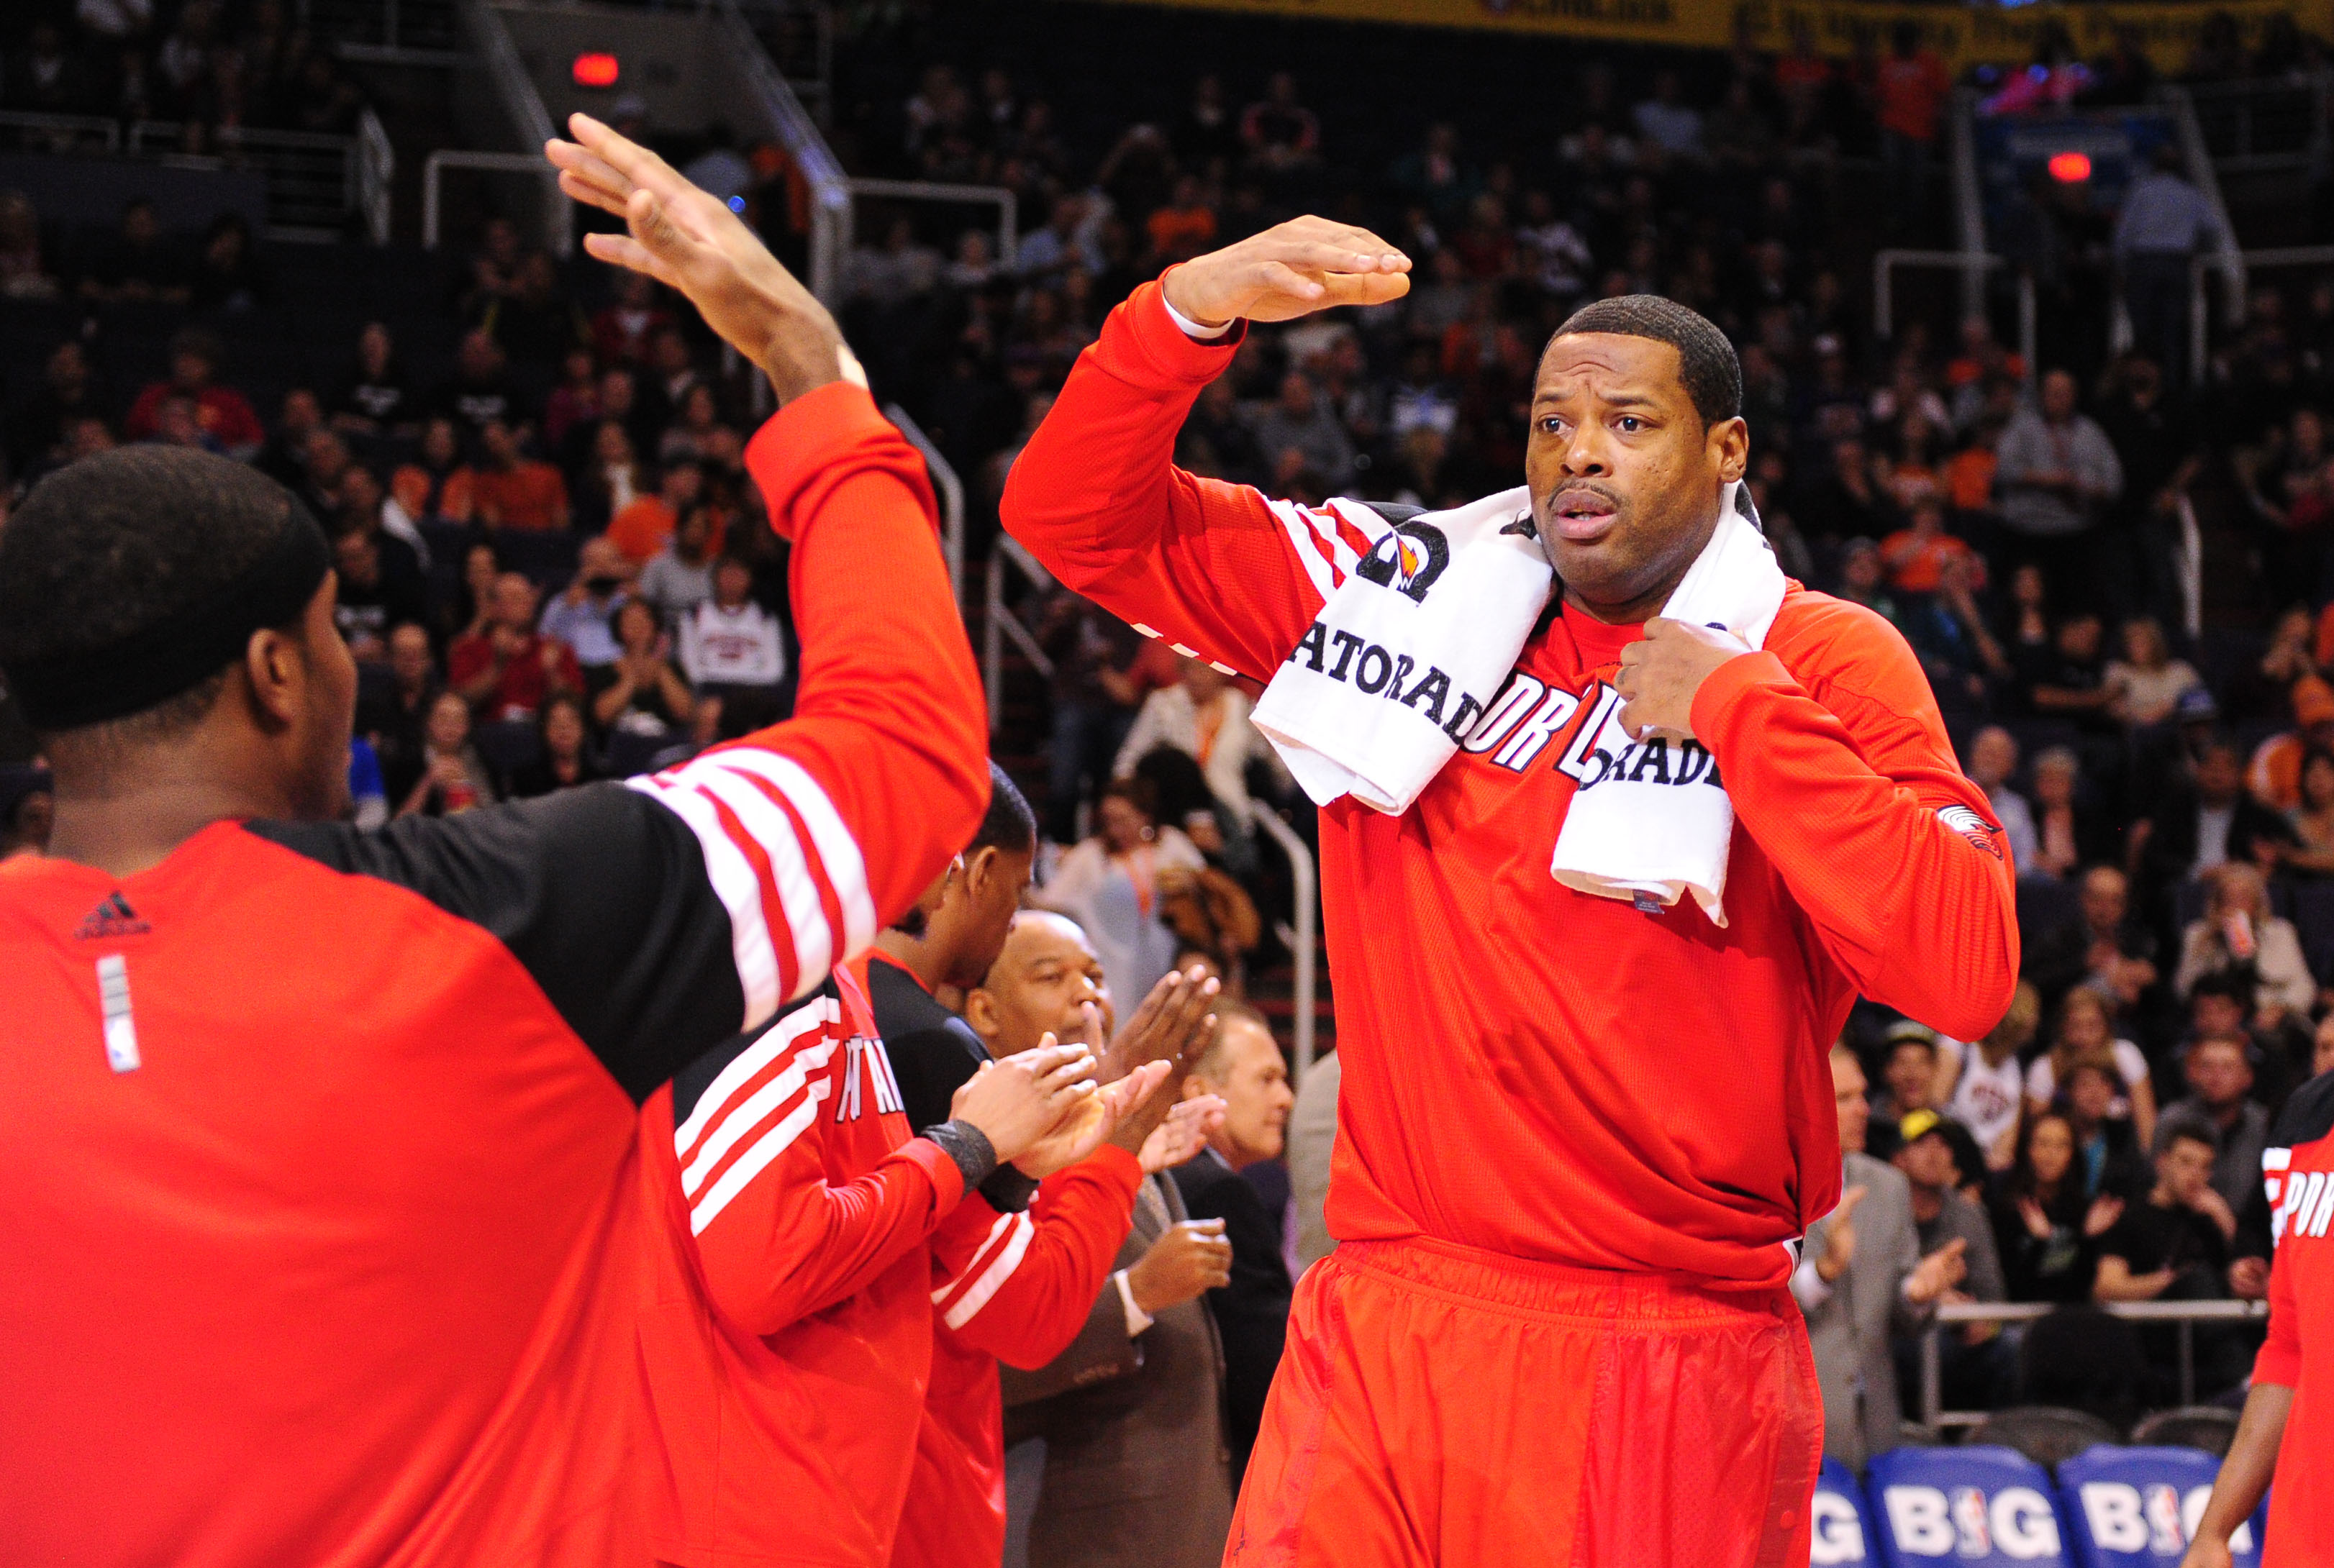 Marcus Camby was traded to the Raptors in the deal that sent Andrea Bargnani to the Knicks. (USA Today Sports)